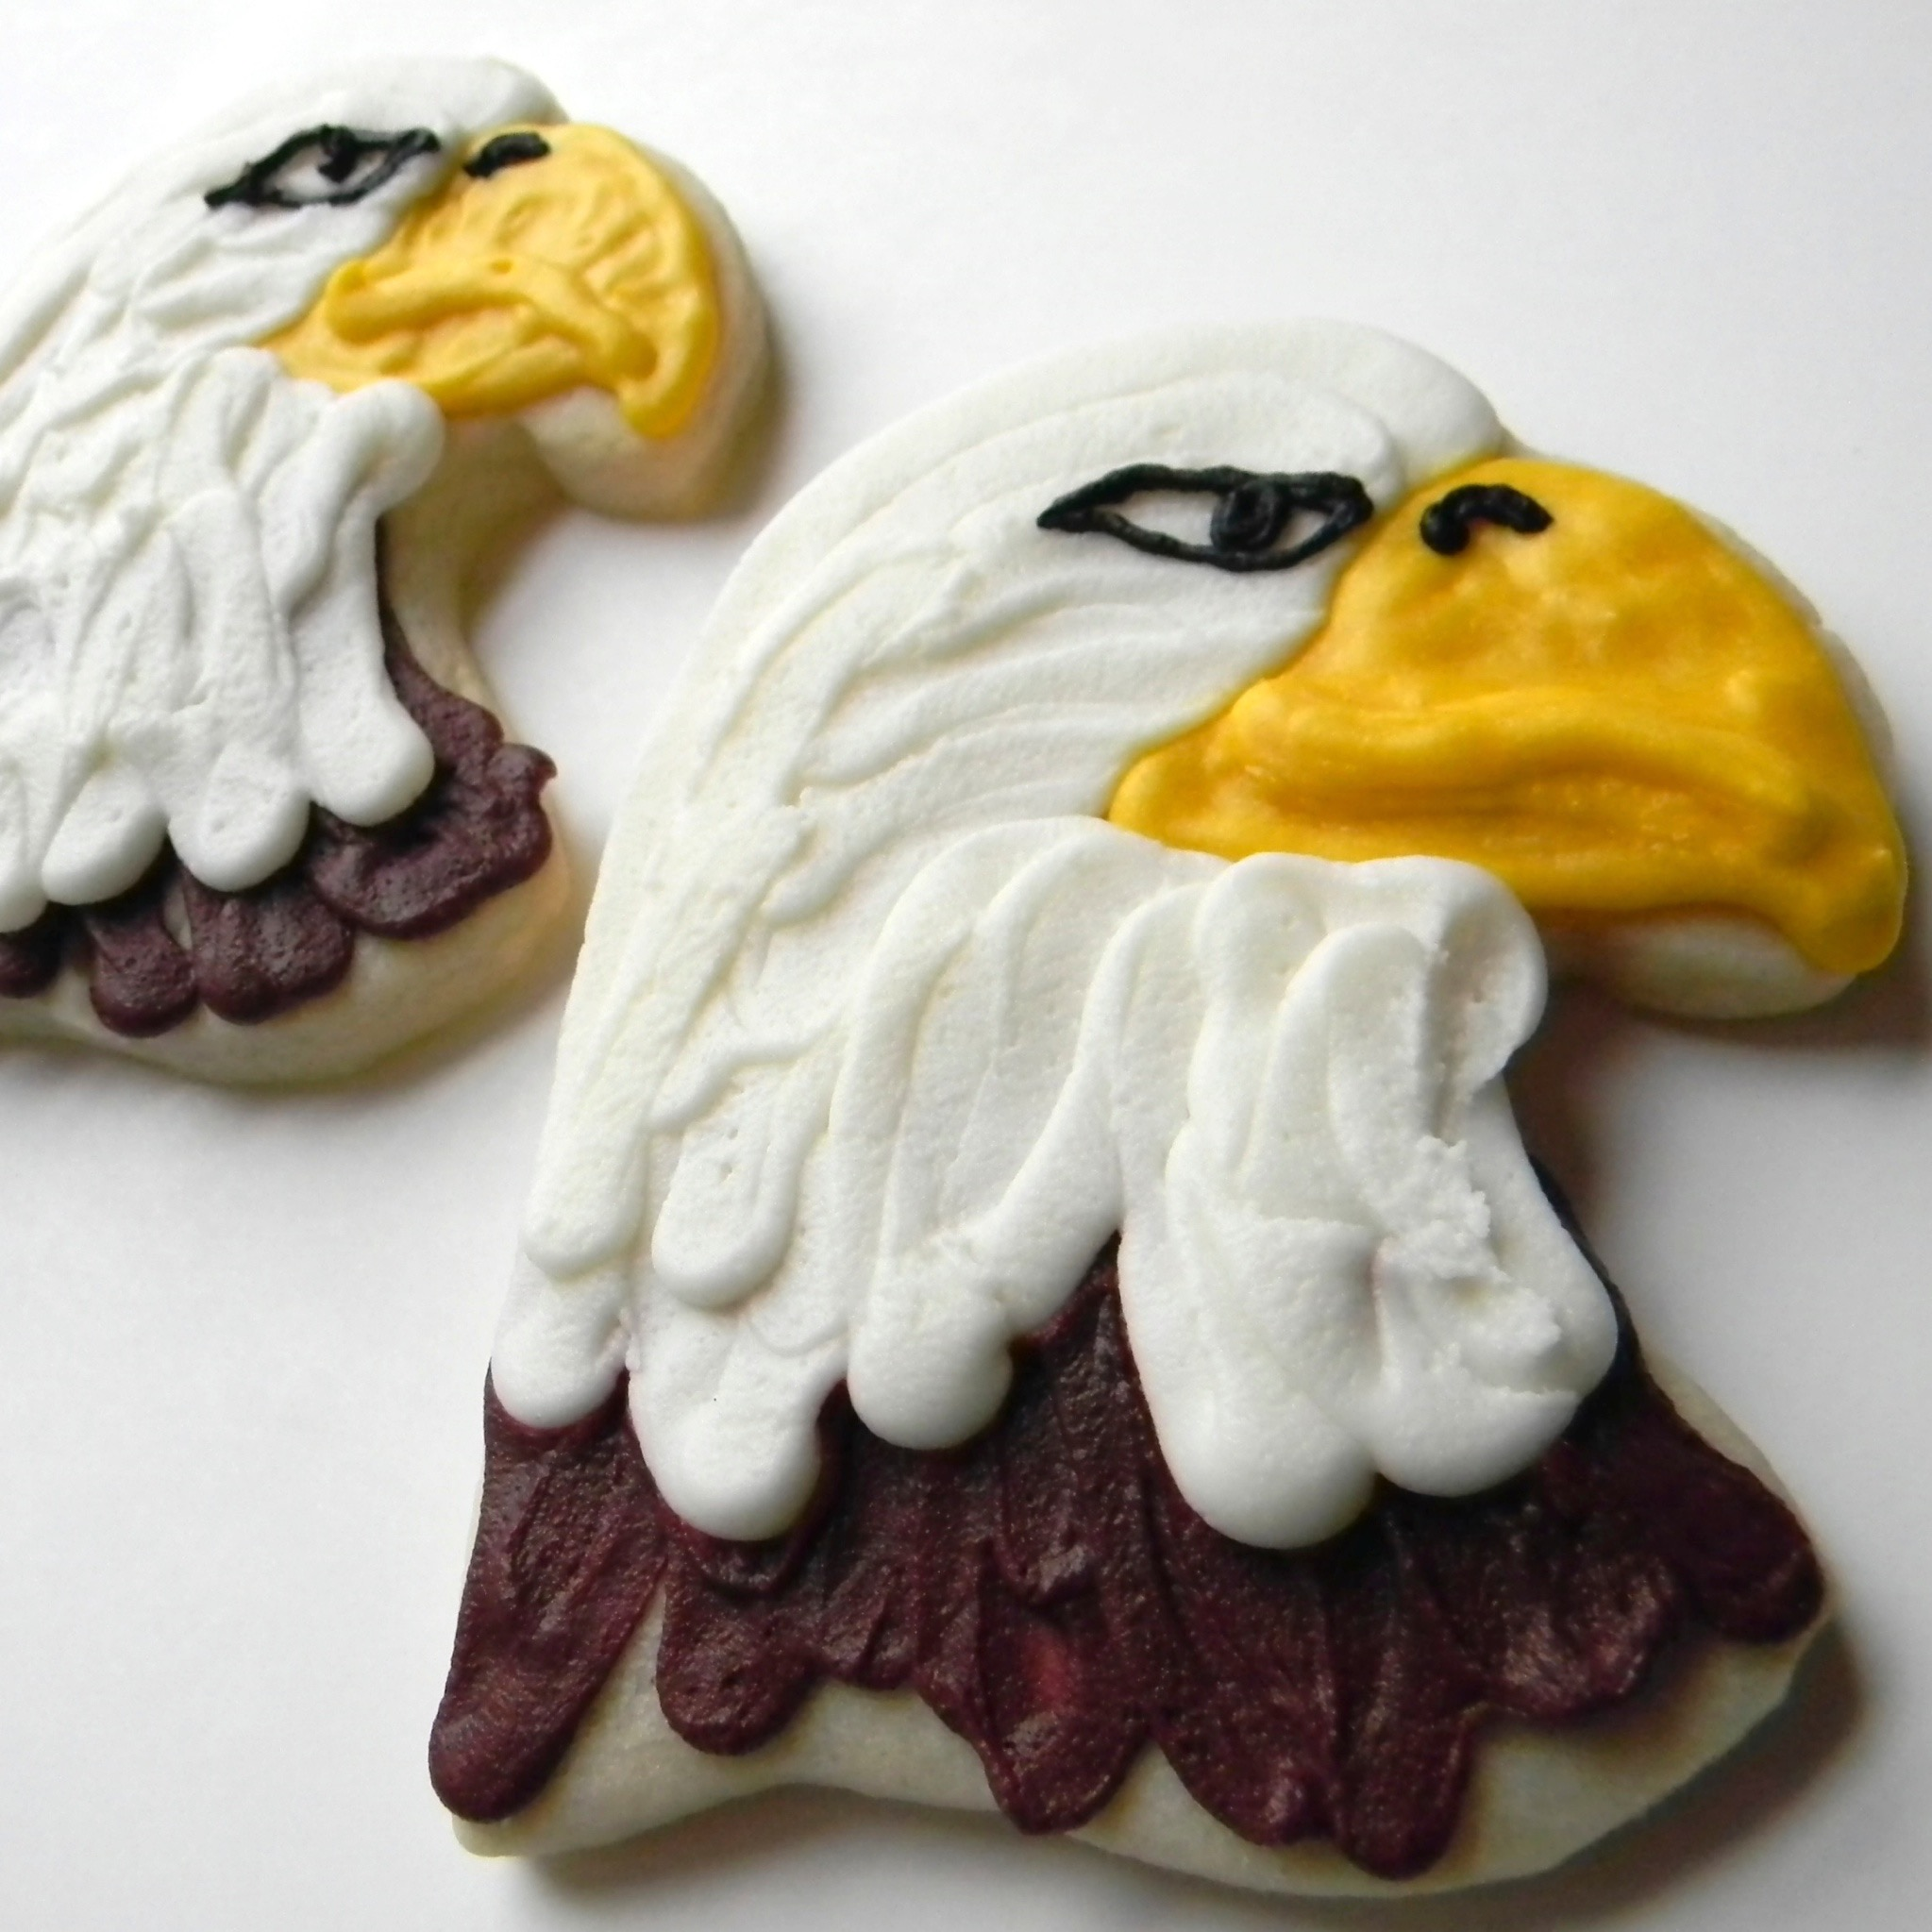 Animal.cookie.eagle.jpg